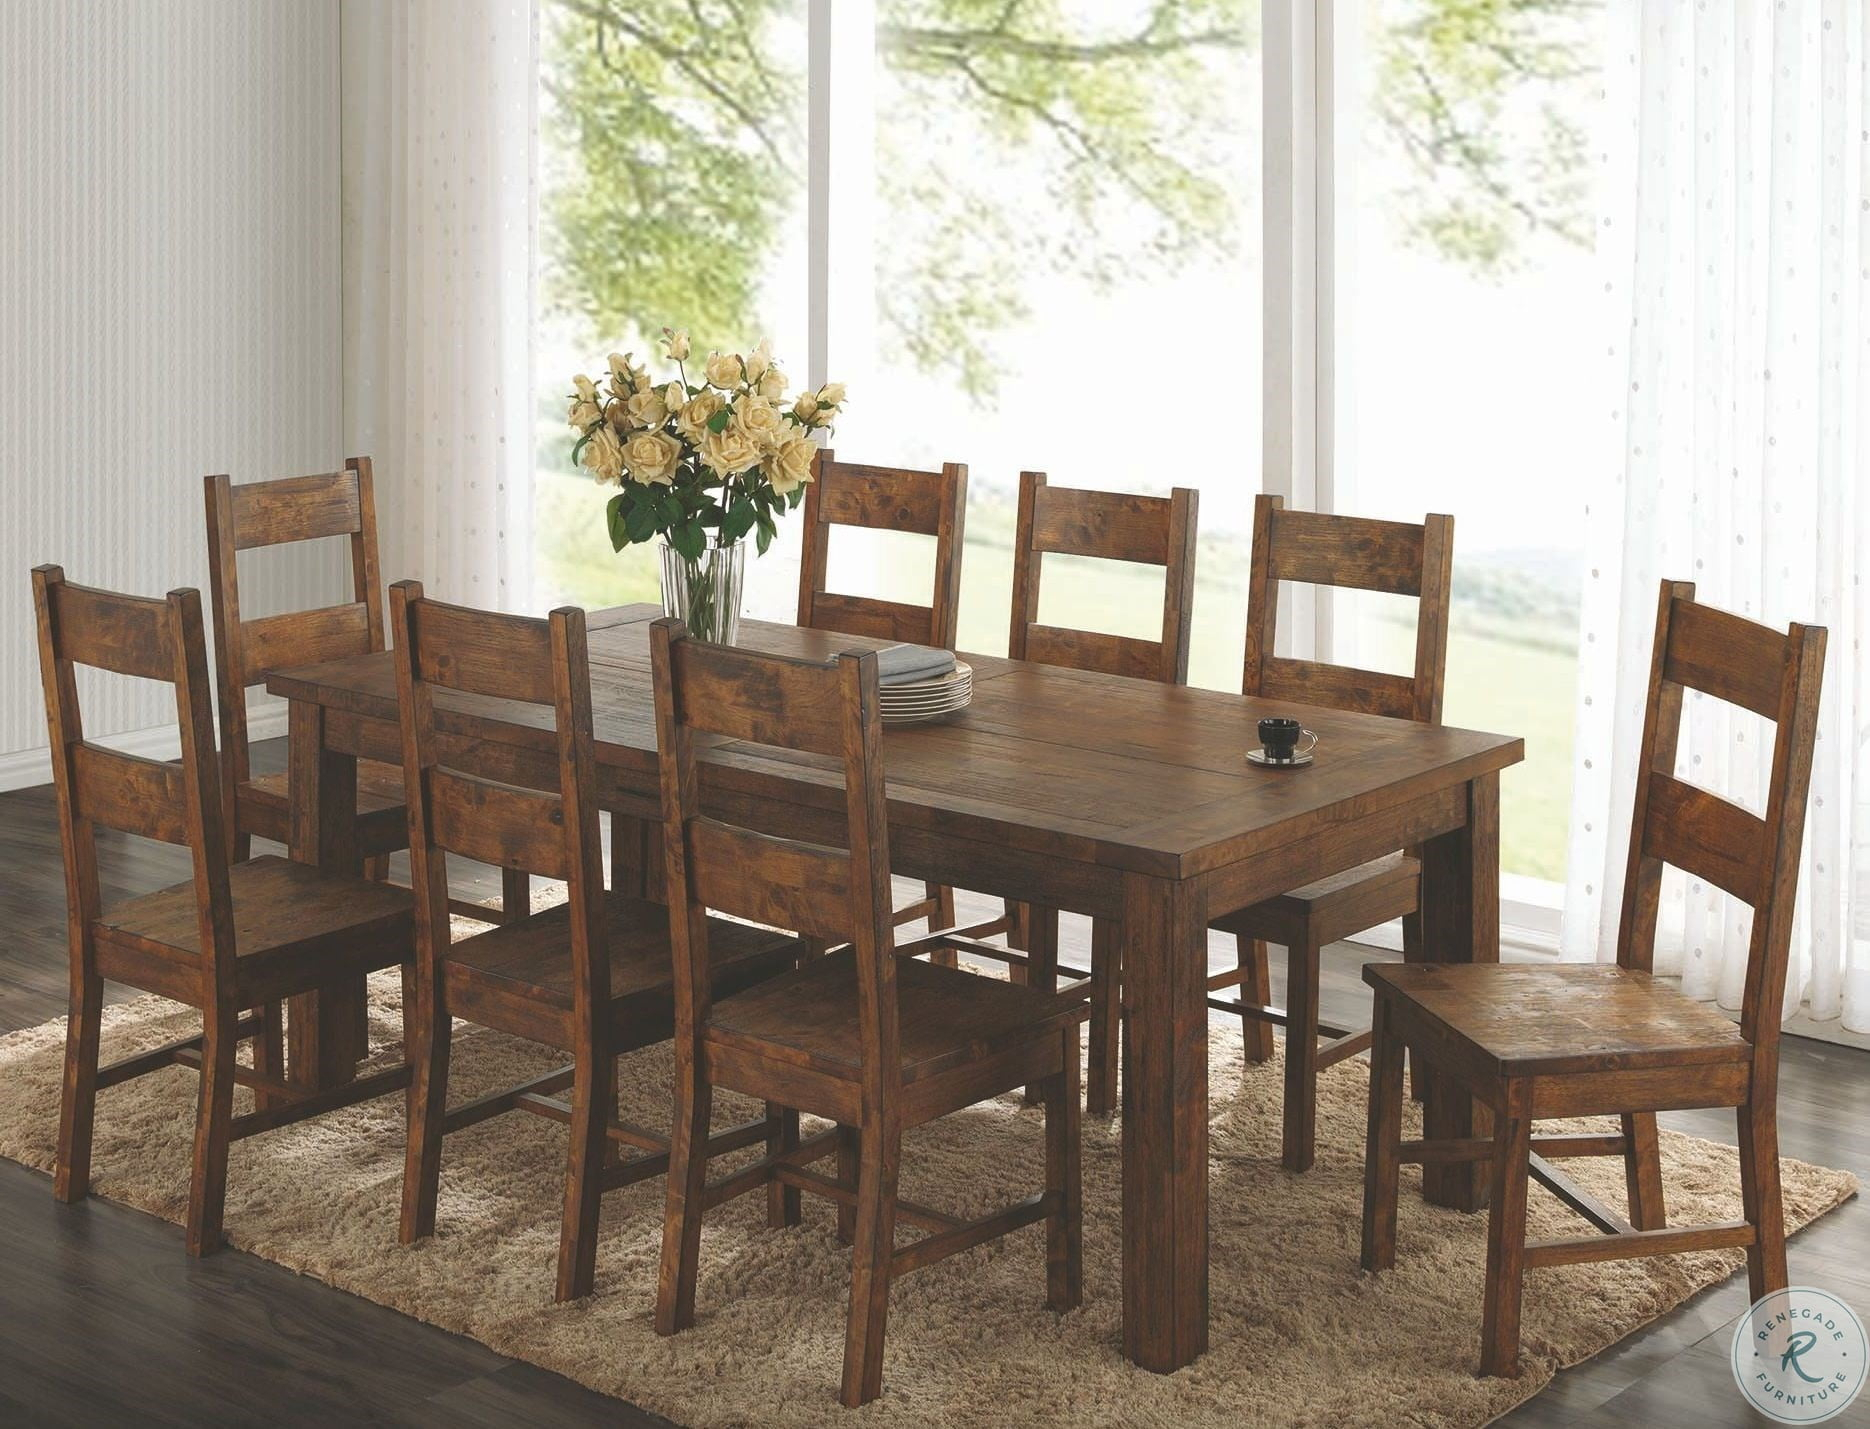 Coleman Rustic Golden Brown Rectangular Dining Table Inside Most Current Brown Wash Livingston Extending Dining Tables (View 21 of 25)